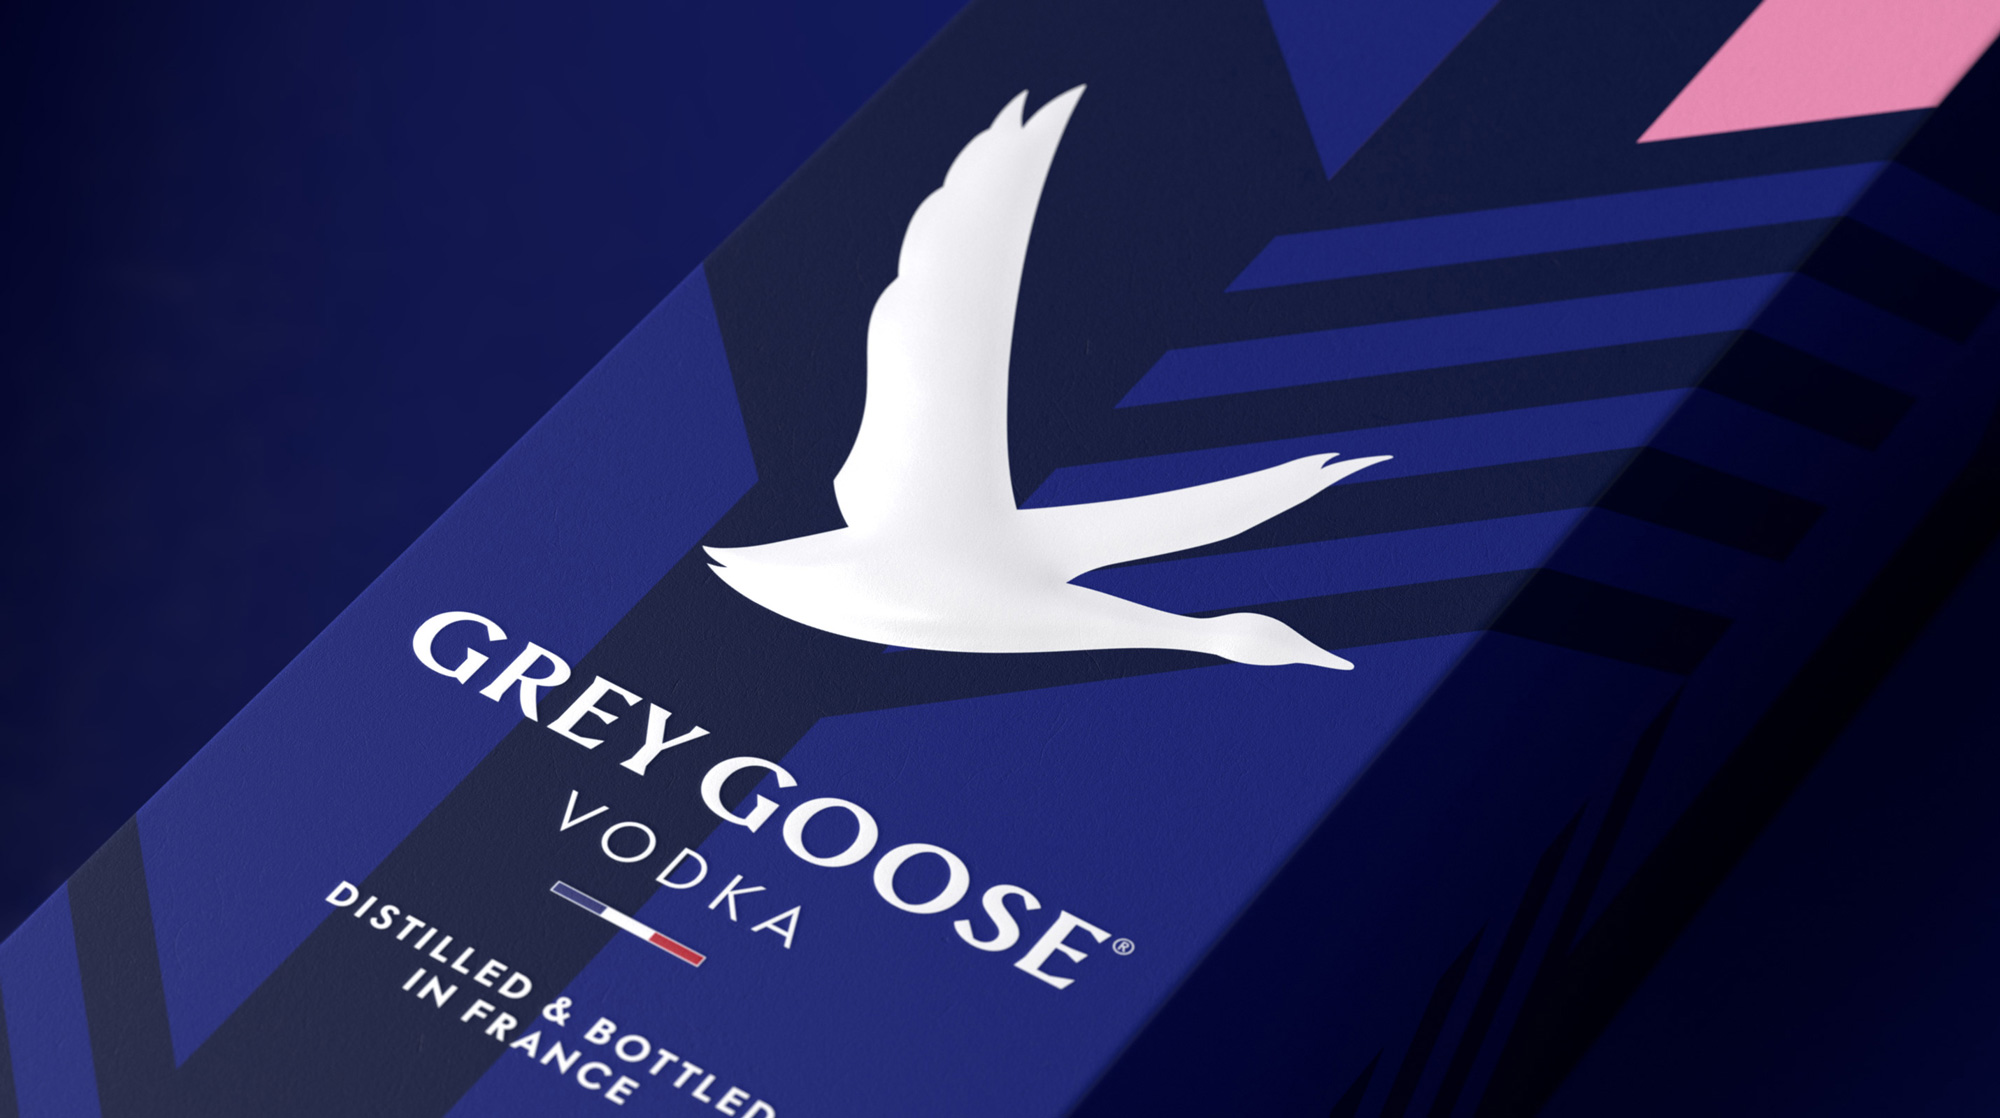 New Logo, Identity, and Packaging for Grey Goose by Ragged Edge